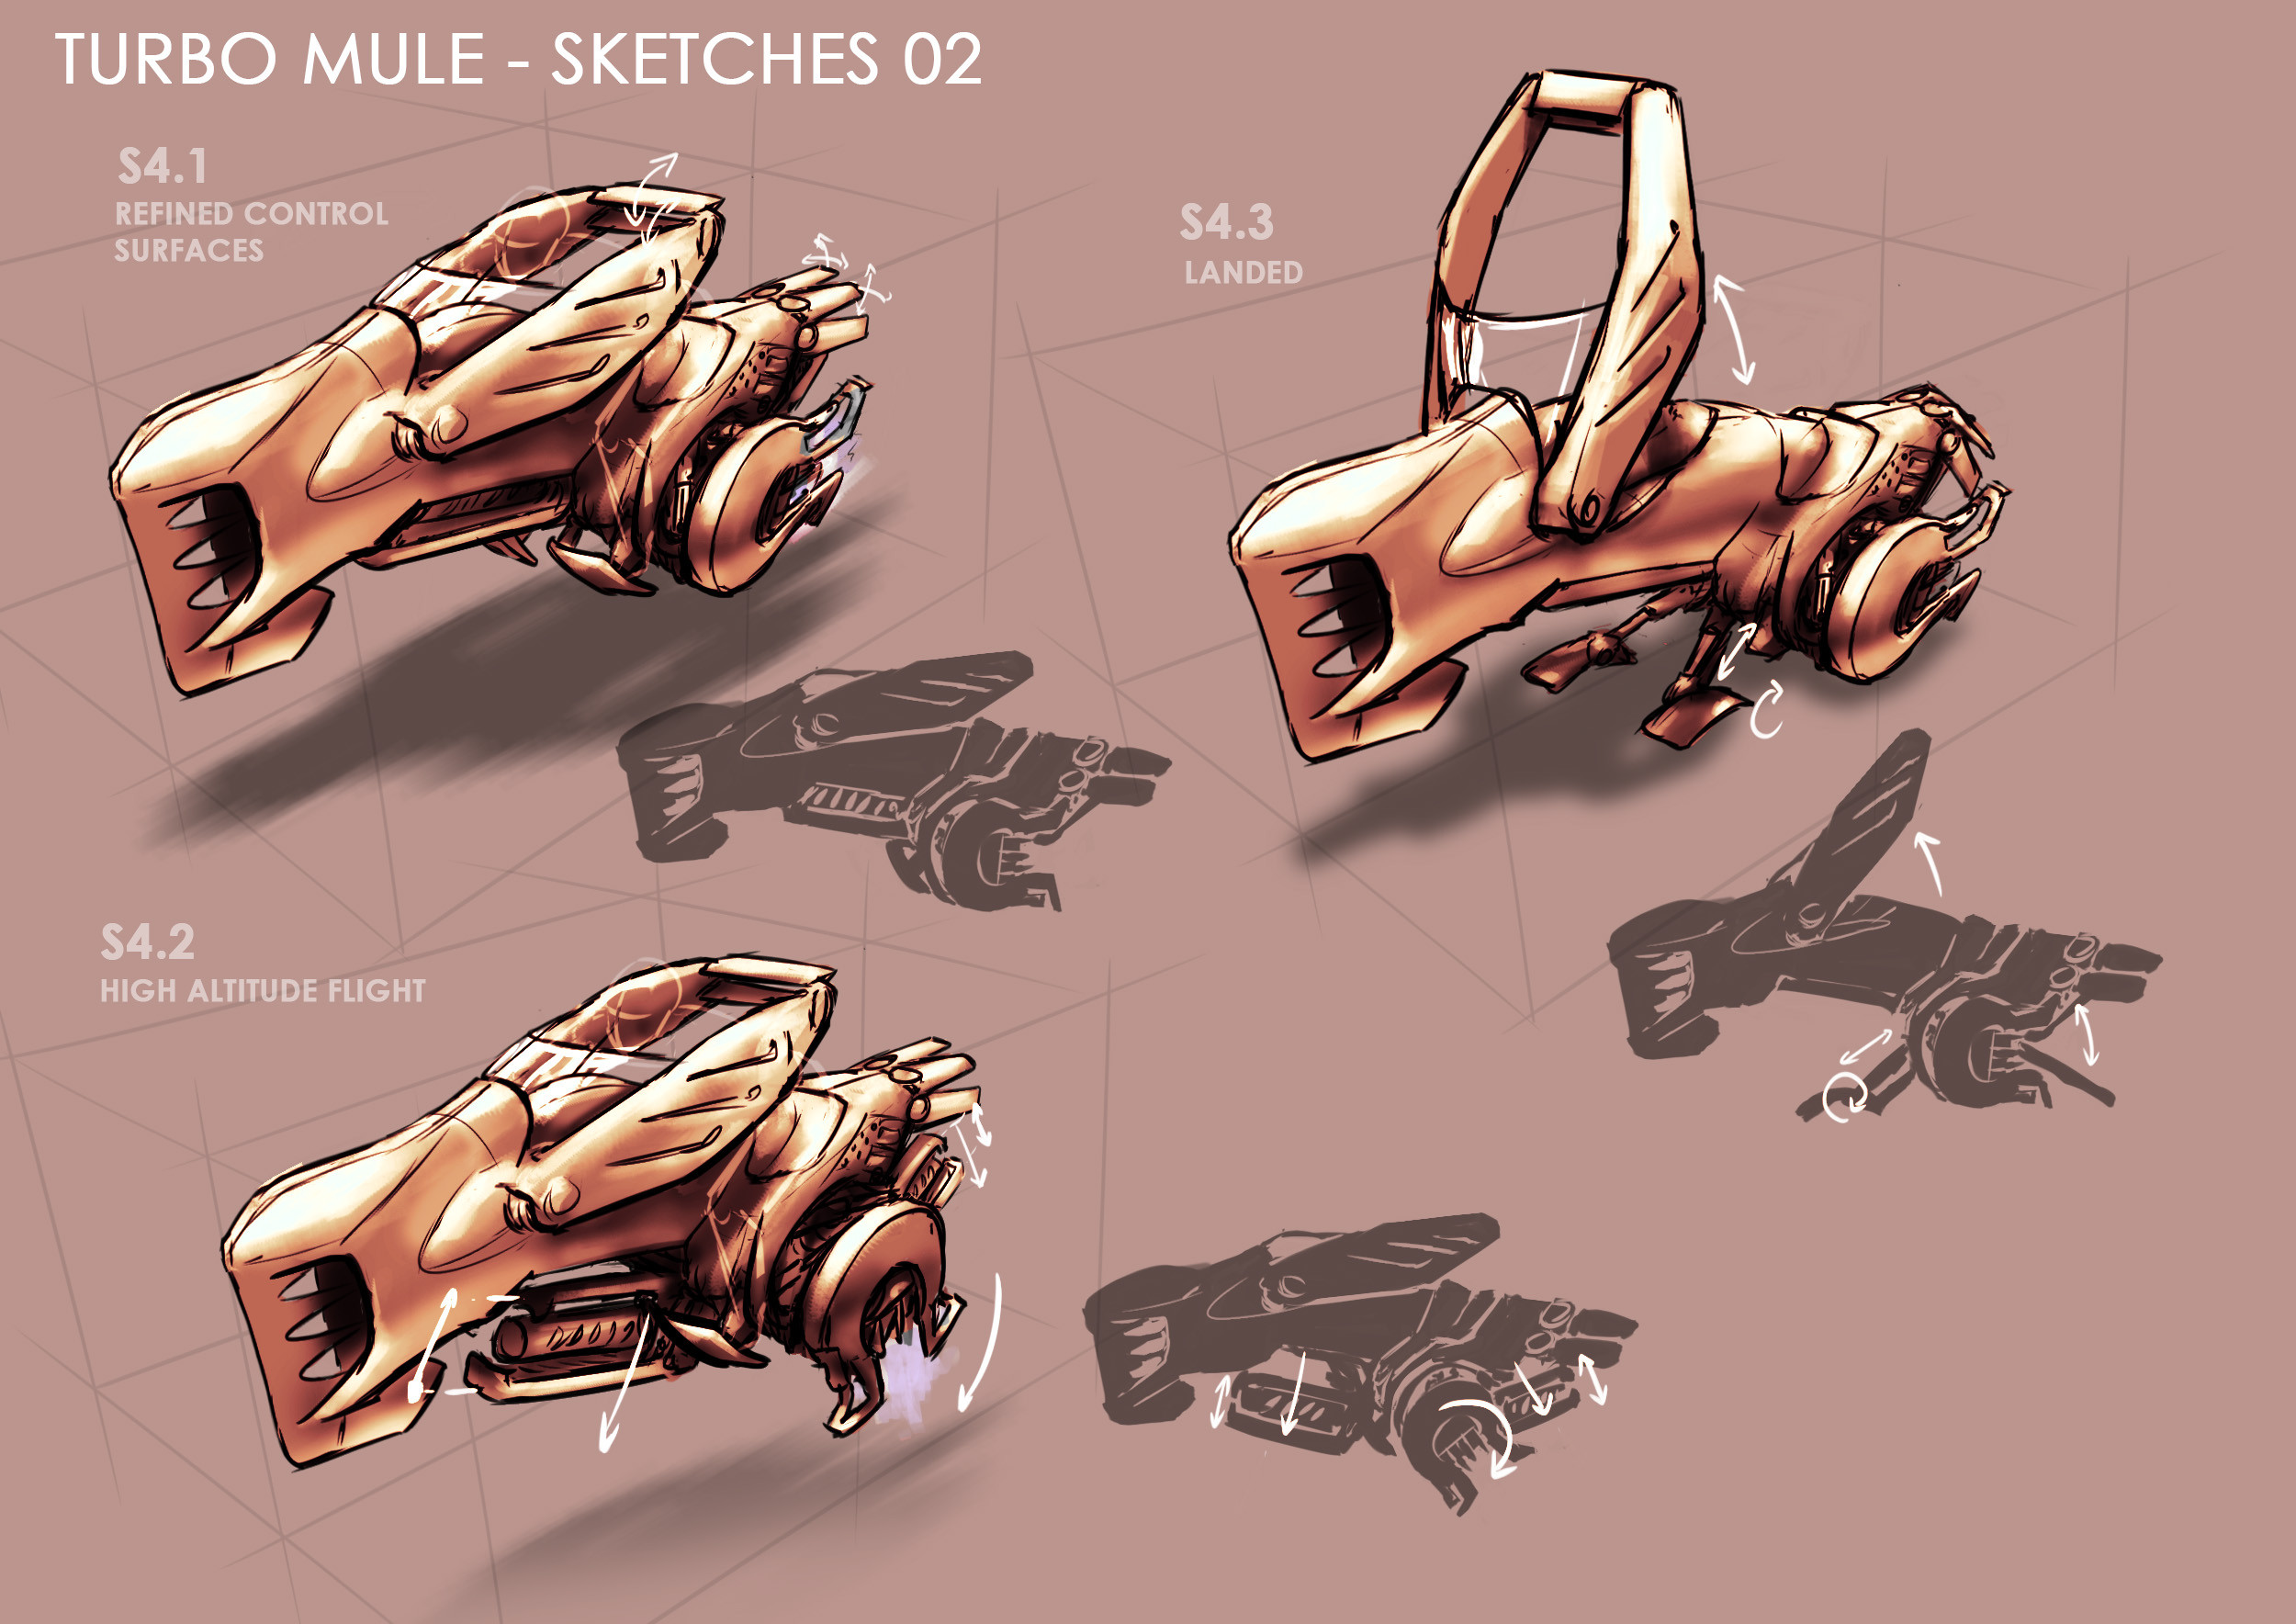 More sketches of the final design